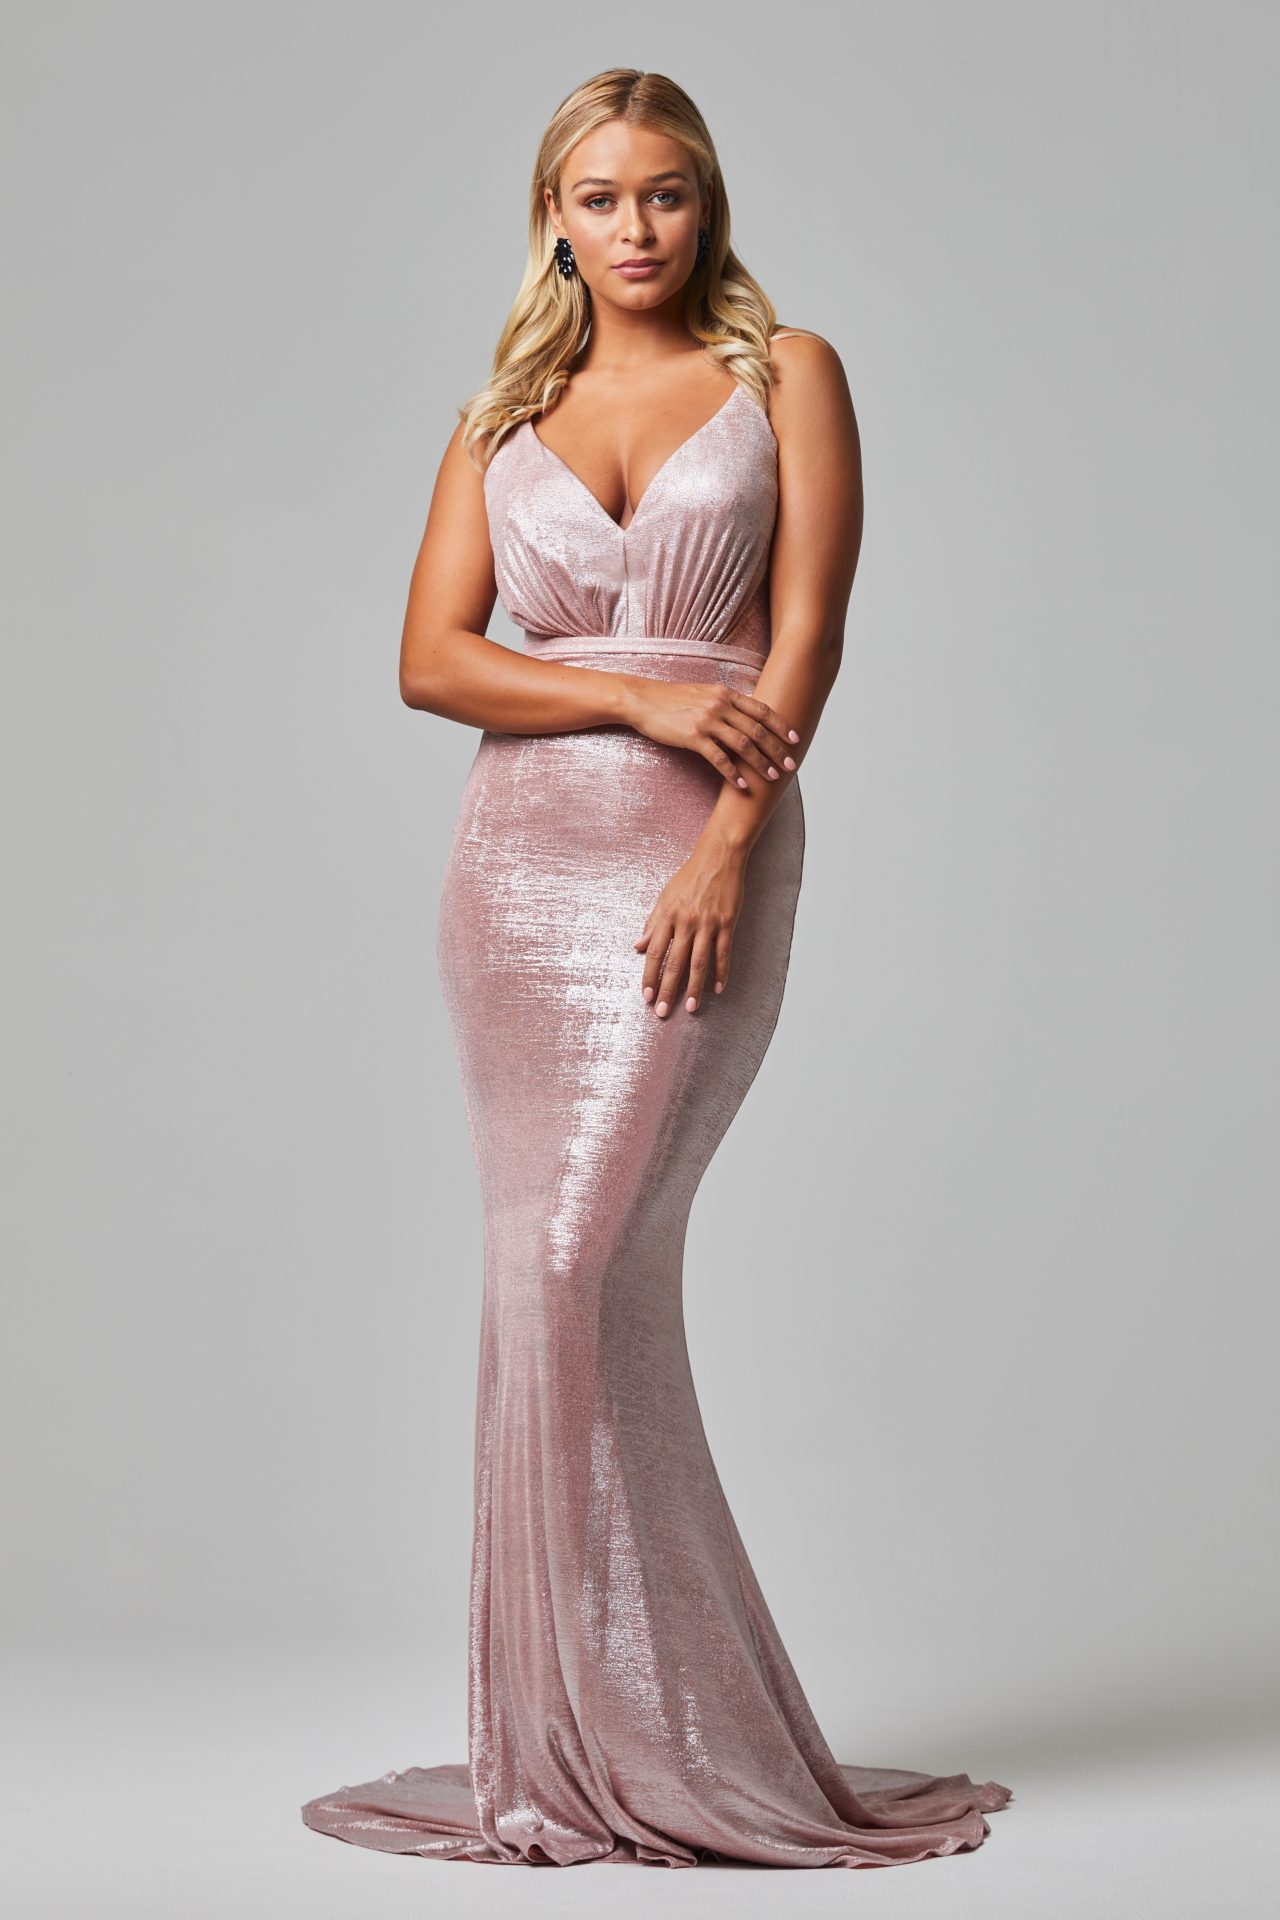 Luna Evening Gown 2019 Autumn Winter Tania Olsen Designs